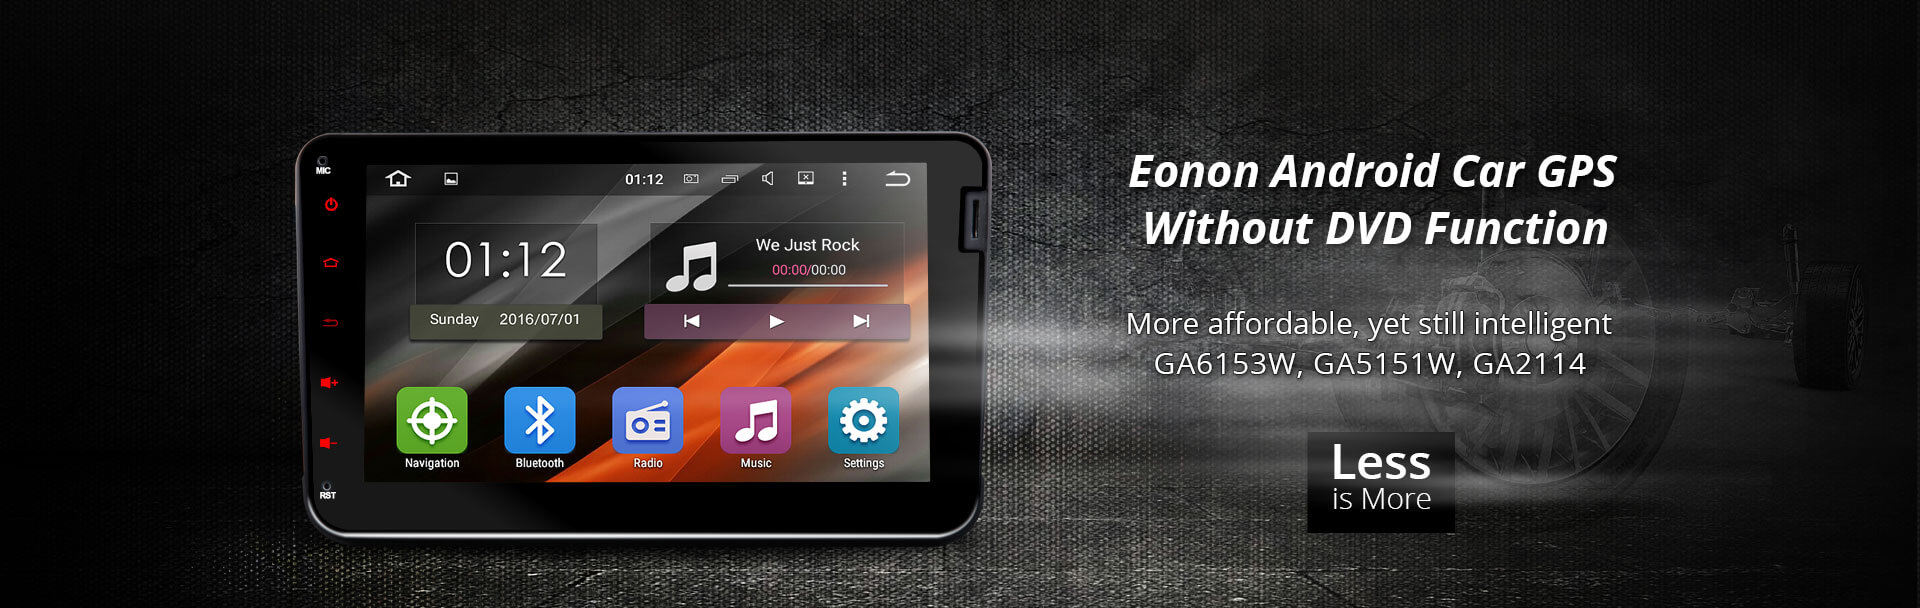 Eonon Android 4 4 Quad Core Car Gps Without Dvd Function